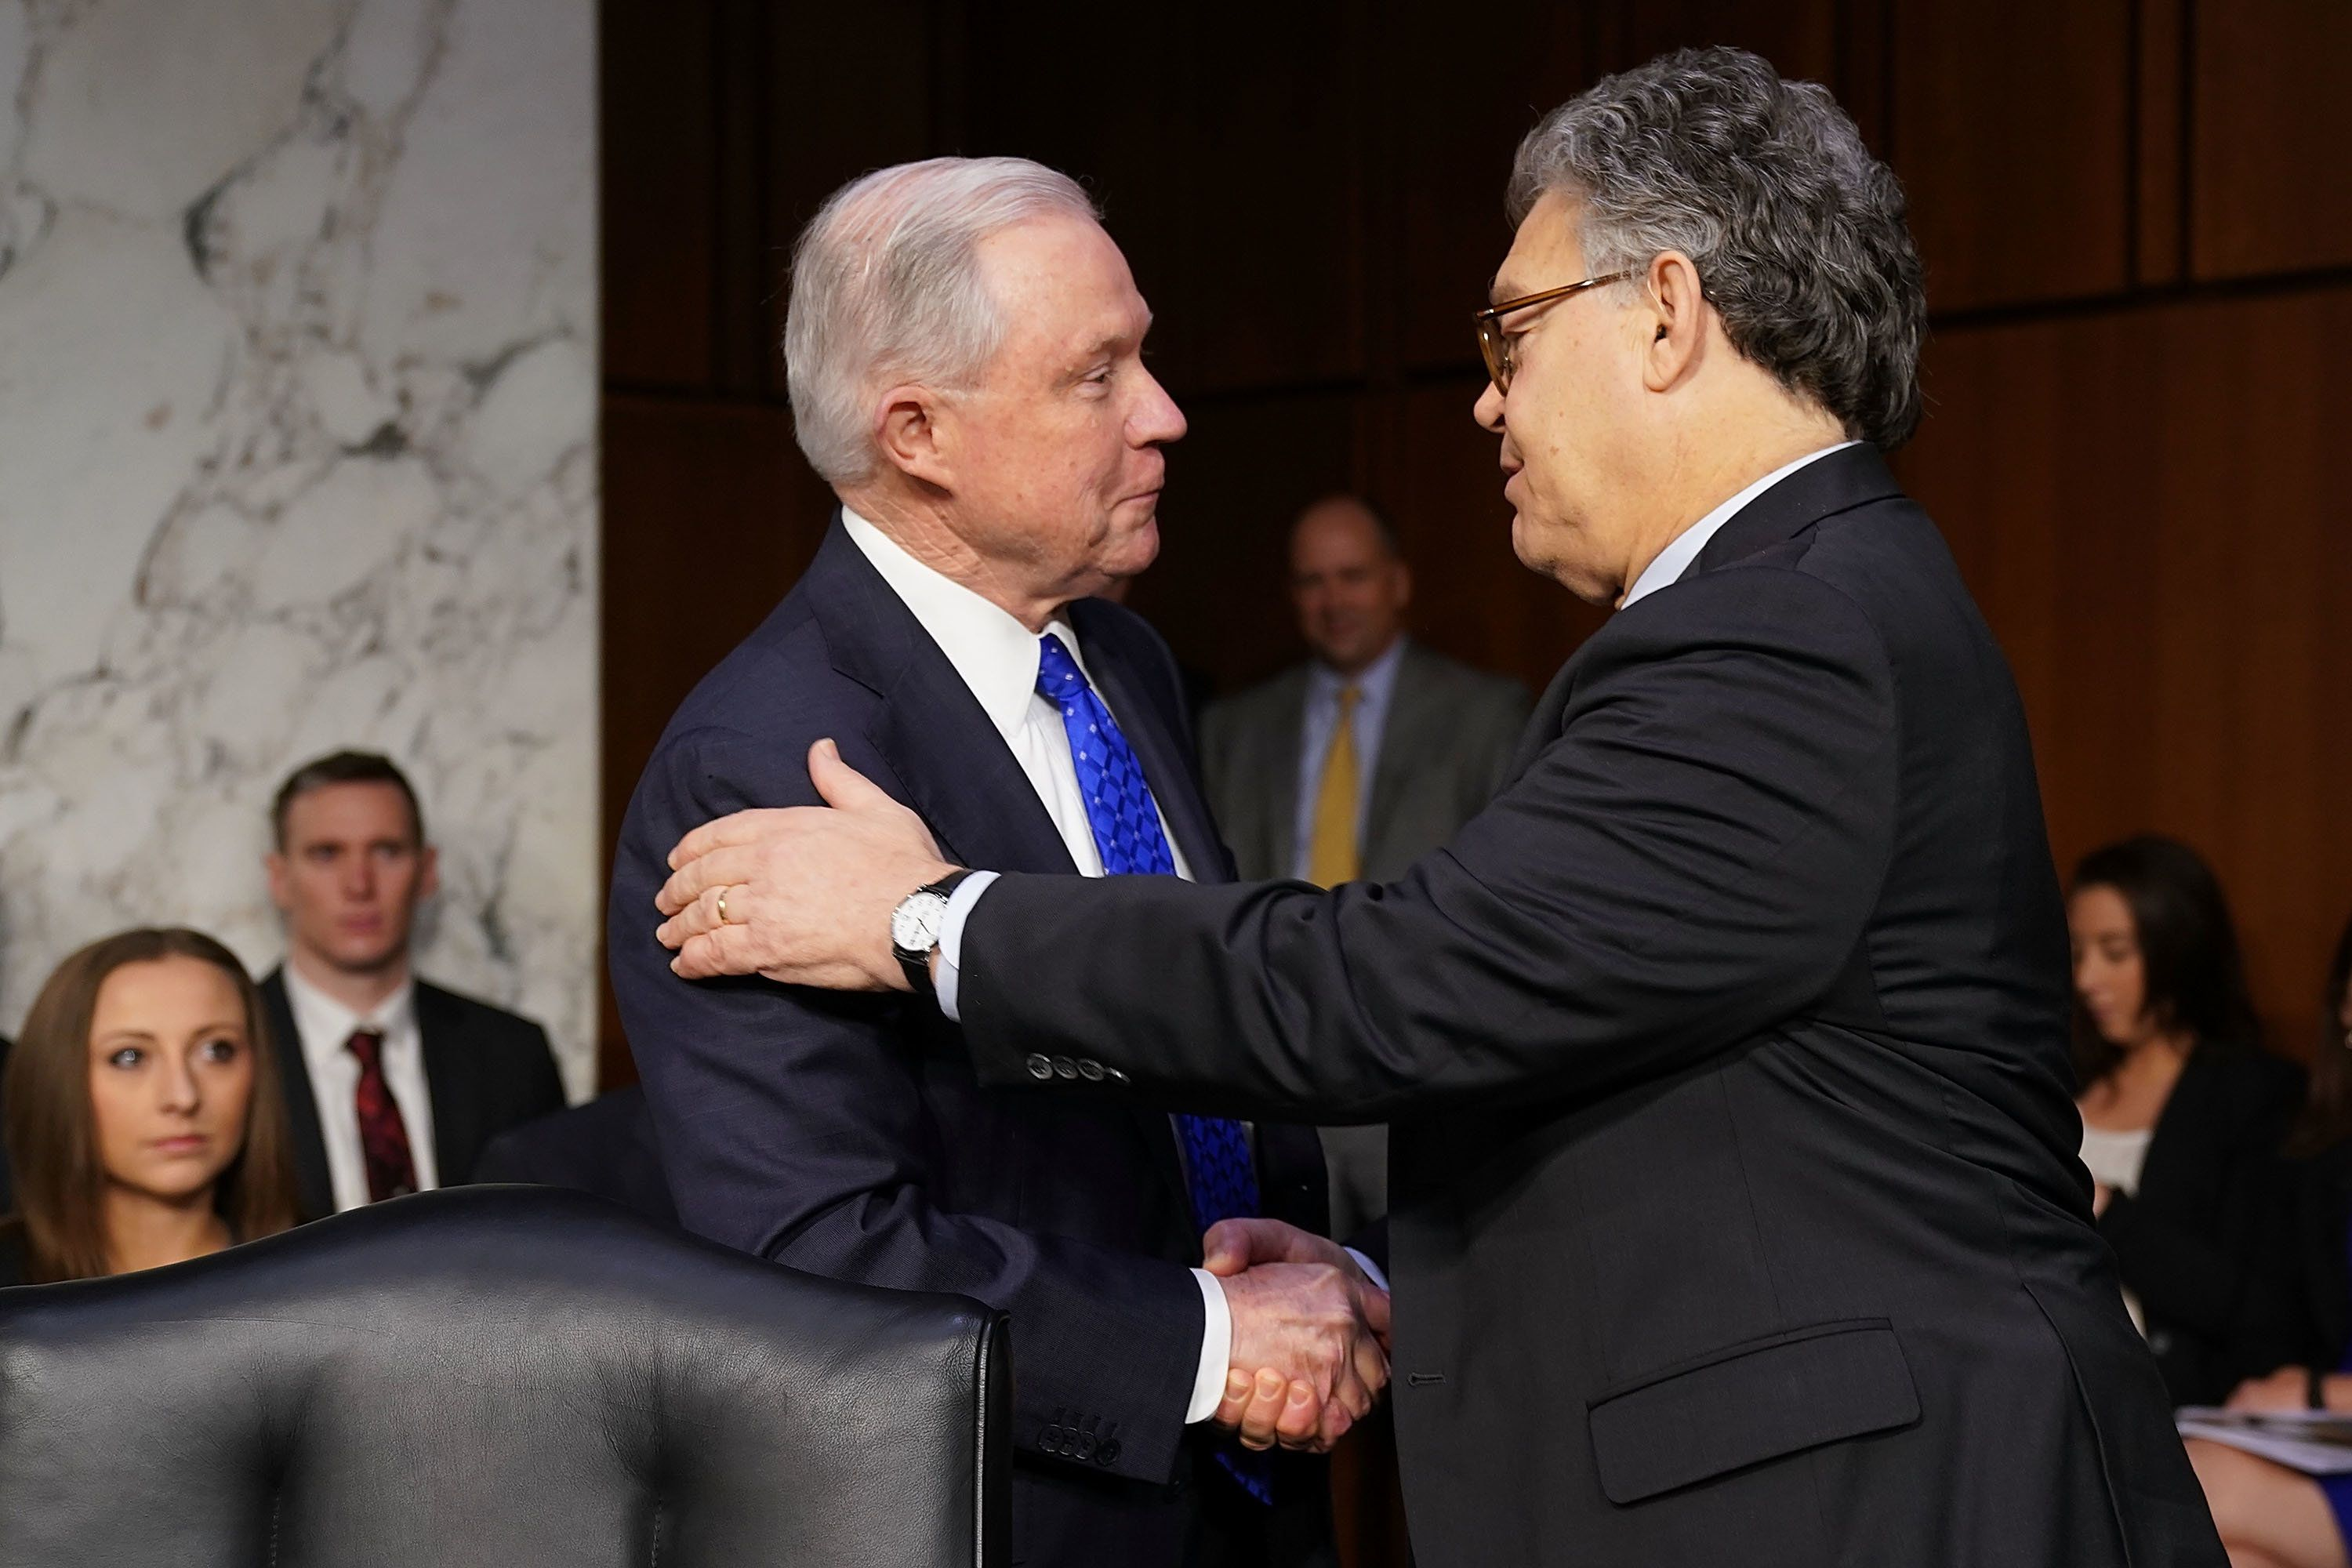 WASHINGTON, DC - OCTOBER 18:  U.S. Attorney General Jeff Sessions (L) is greeted by Senate Judiciary Committee member Sen. Al Franken (D-MN) before a hearing in the Hart Senate Office Building on Capitol Hill October 18, 2017 in Washington, DC. Committee members questioned Sessions about conversations he had with President Donald Trump about the firing of former FBI Director James Comey, the Defered Action for Childhood Arrivals (DACA) policy, the ongoing investigation about Russian intereference in the 2016 presidential election by Robert Muller and other subjects.  (Photo by Chip Somodevilla/Getty Images)